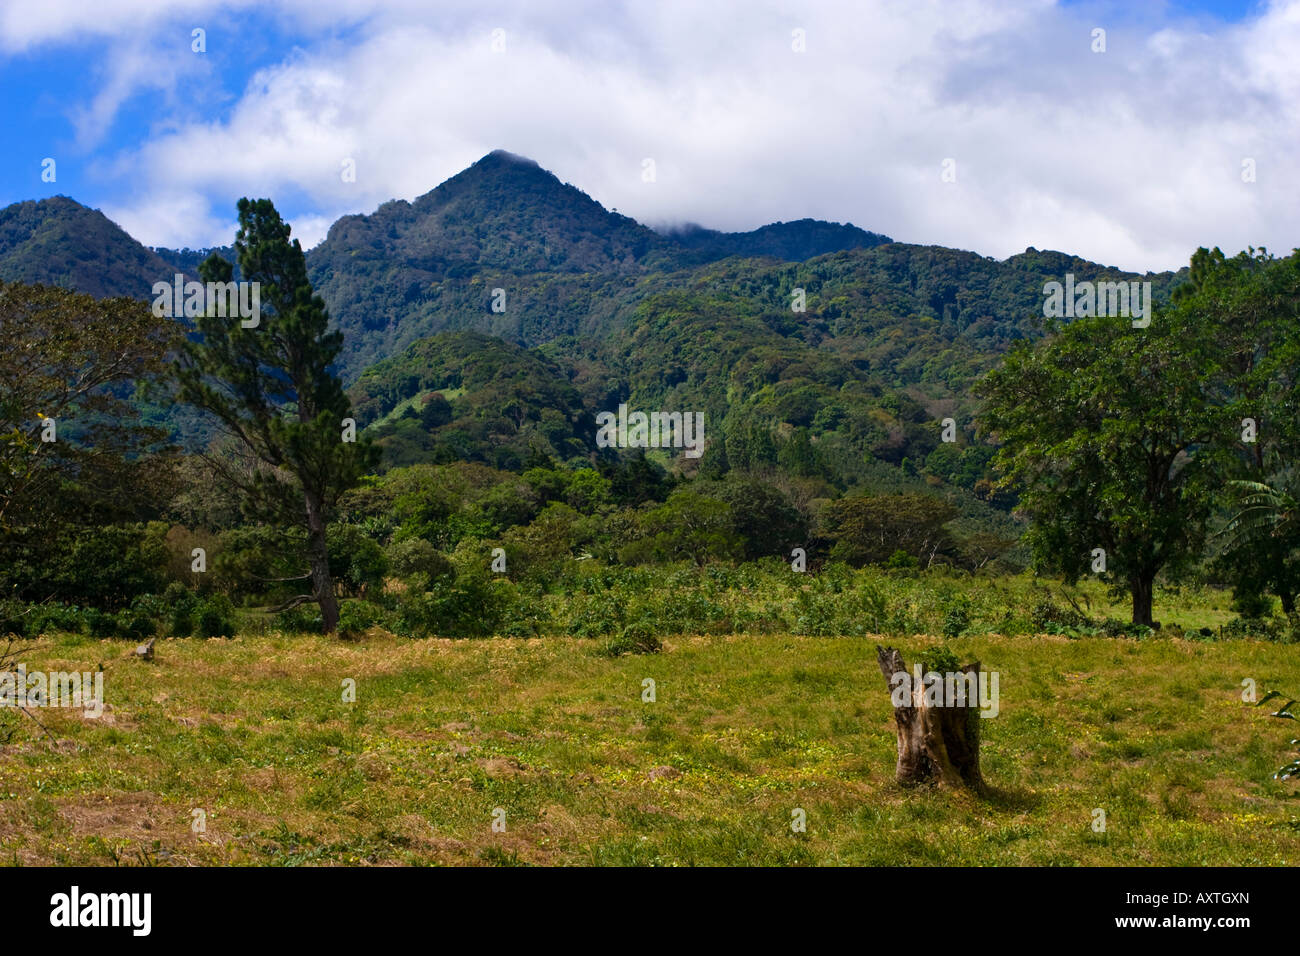 Peaks in Parque Nacional Volcan Baru National Park near Boquete Northern Panama - Stock Image